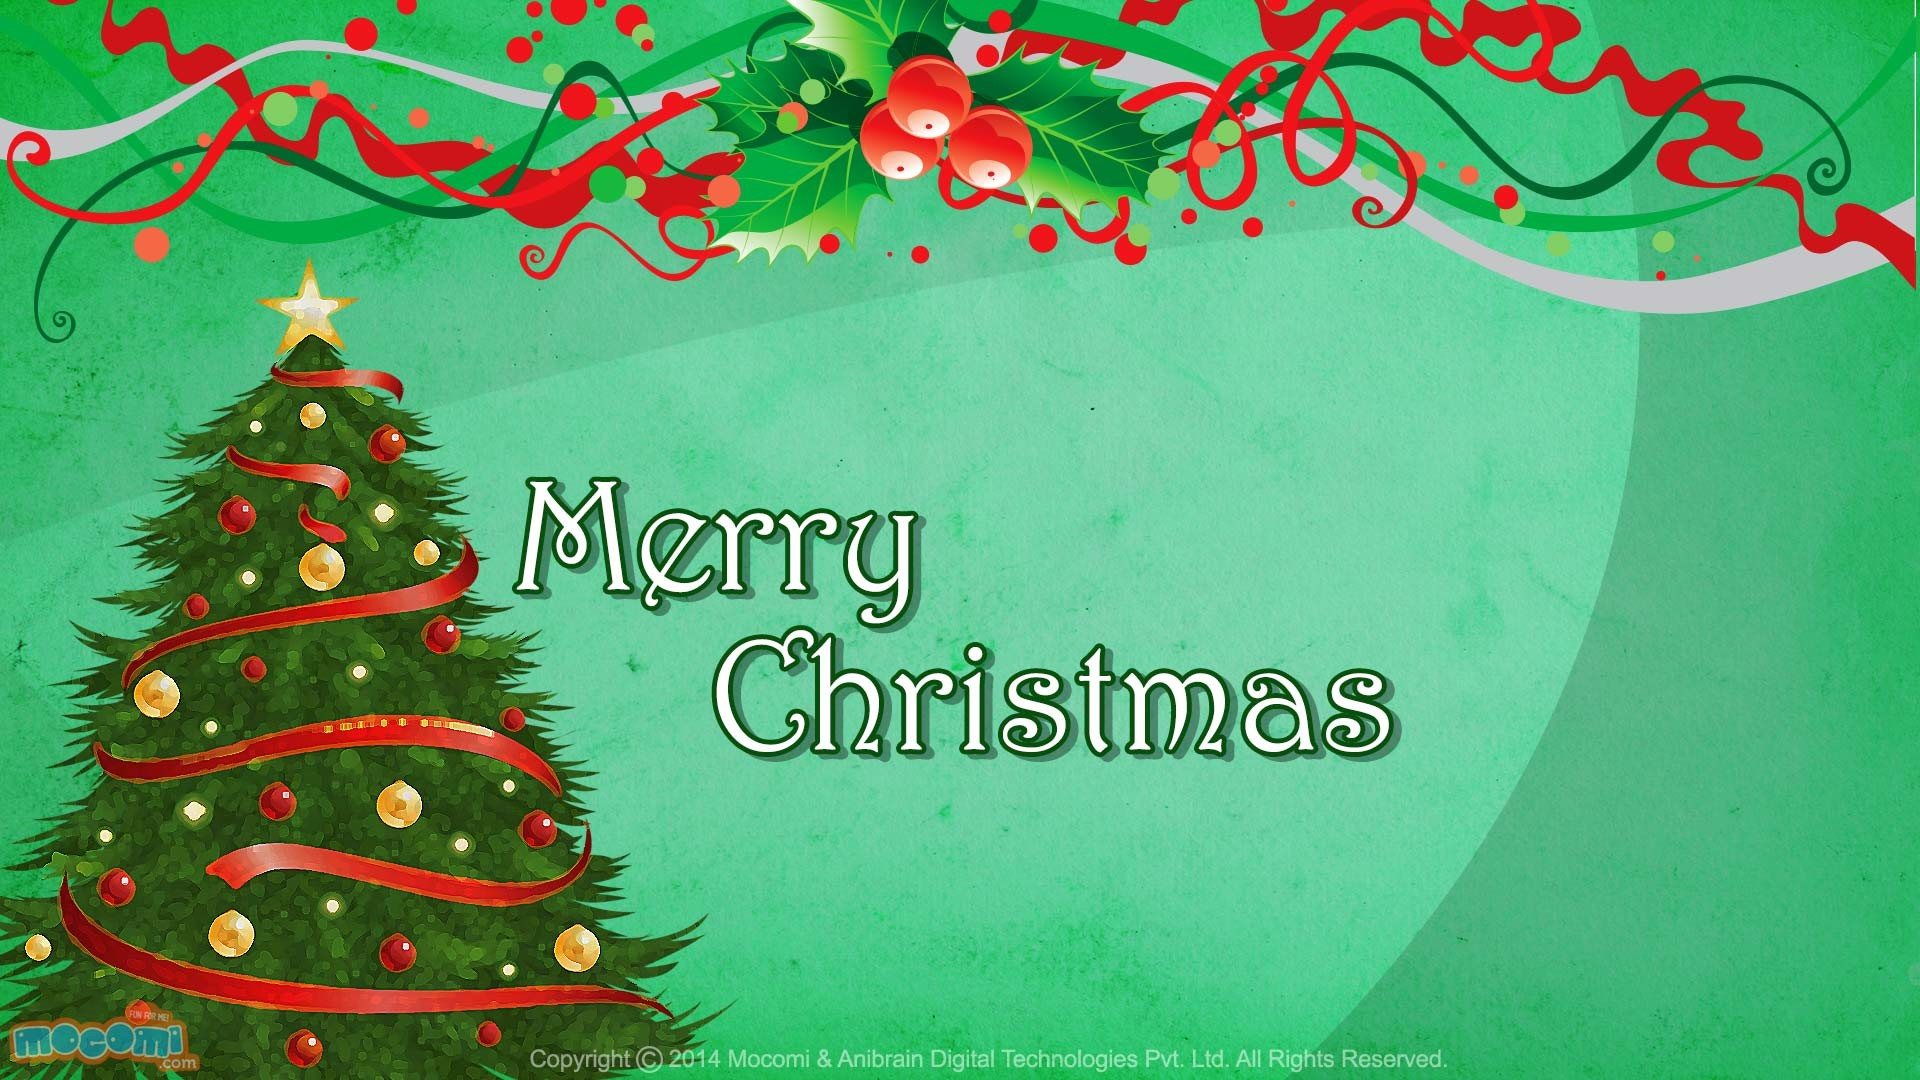 merry christmas computer wallpaper 67 images